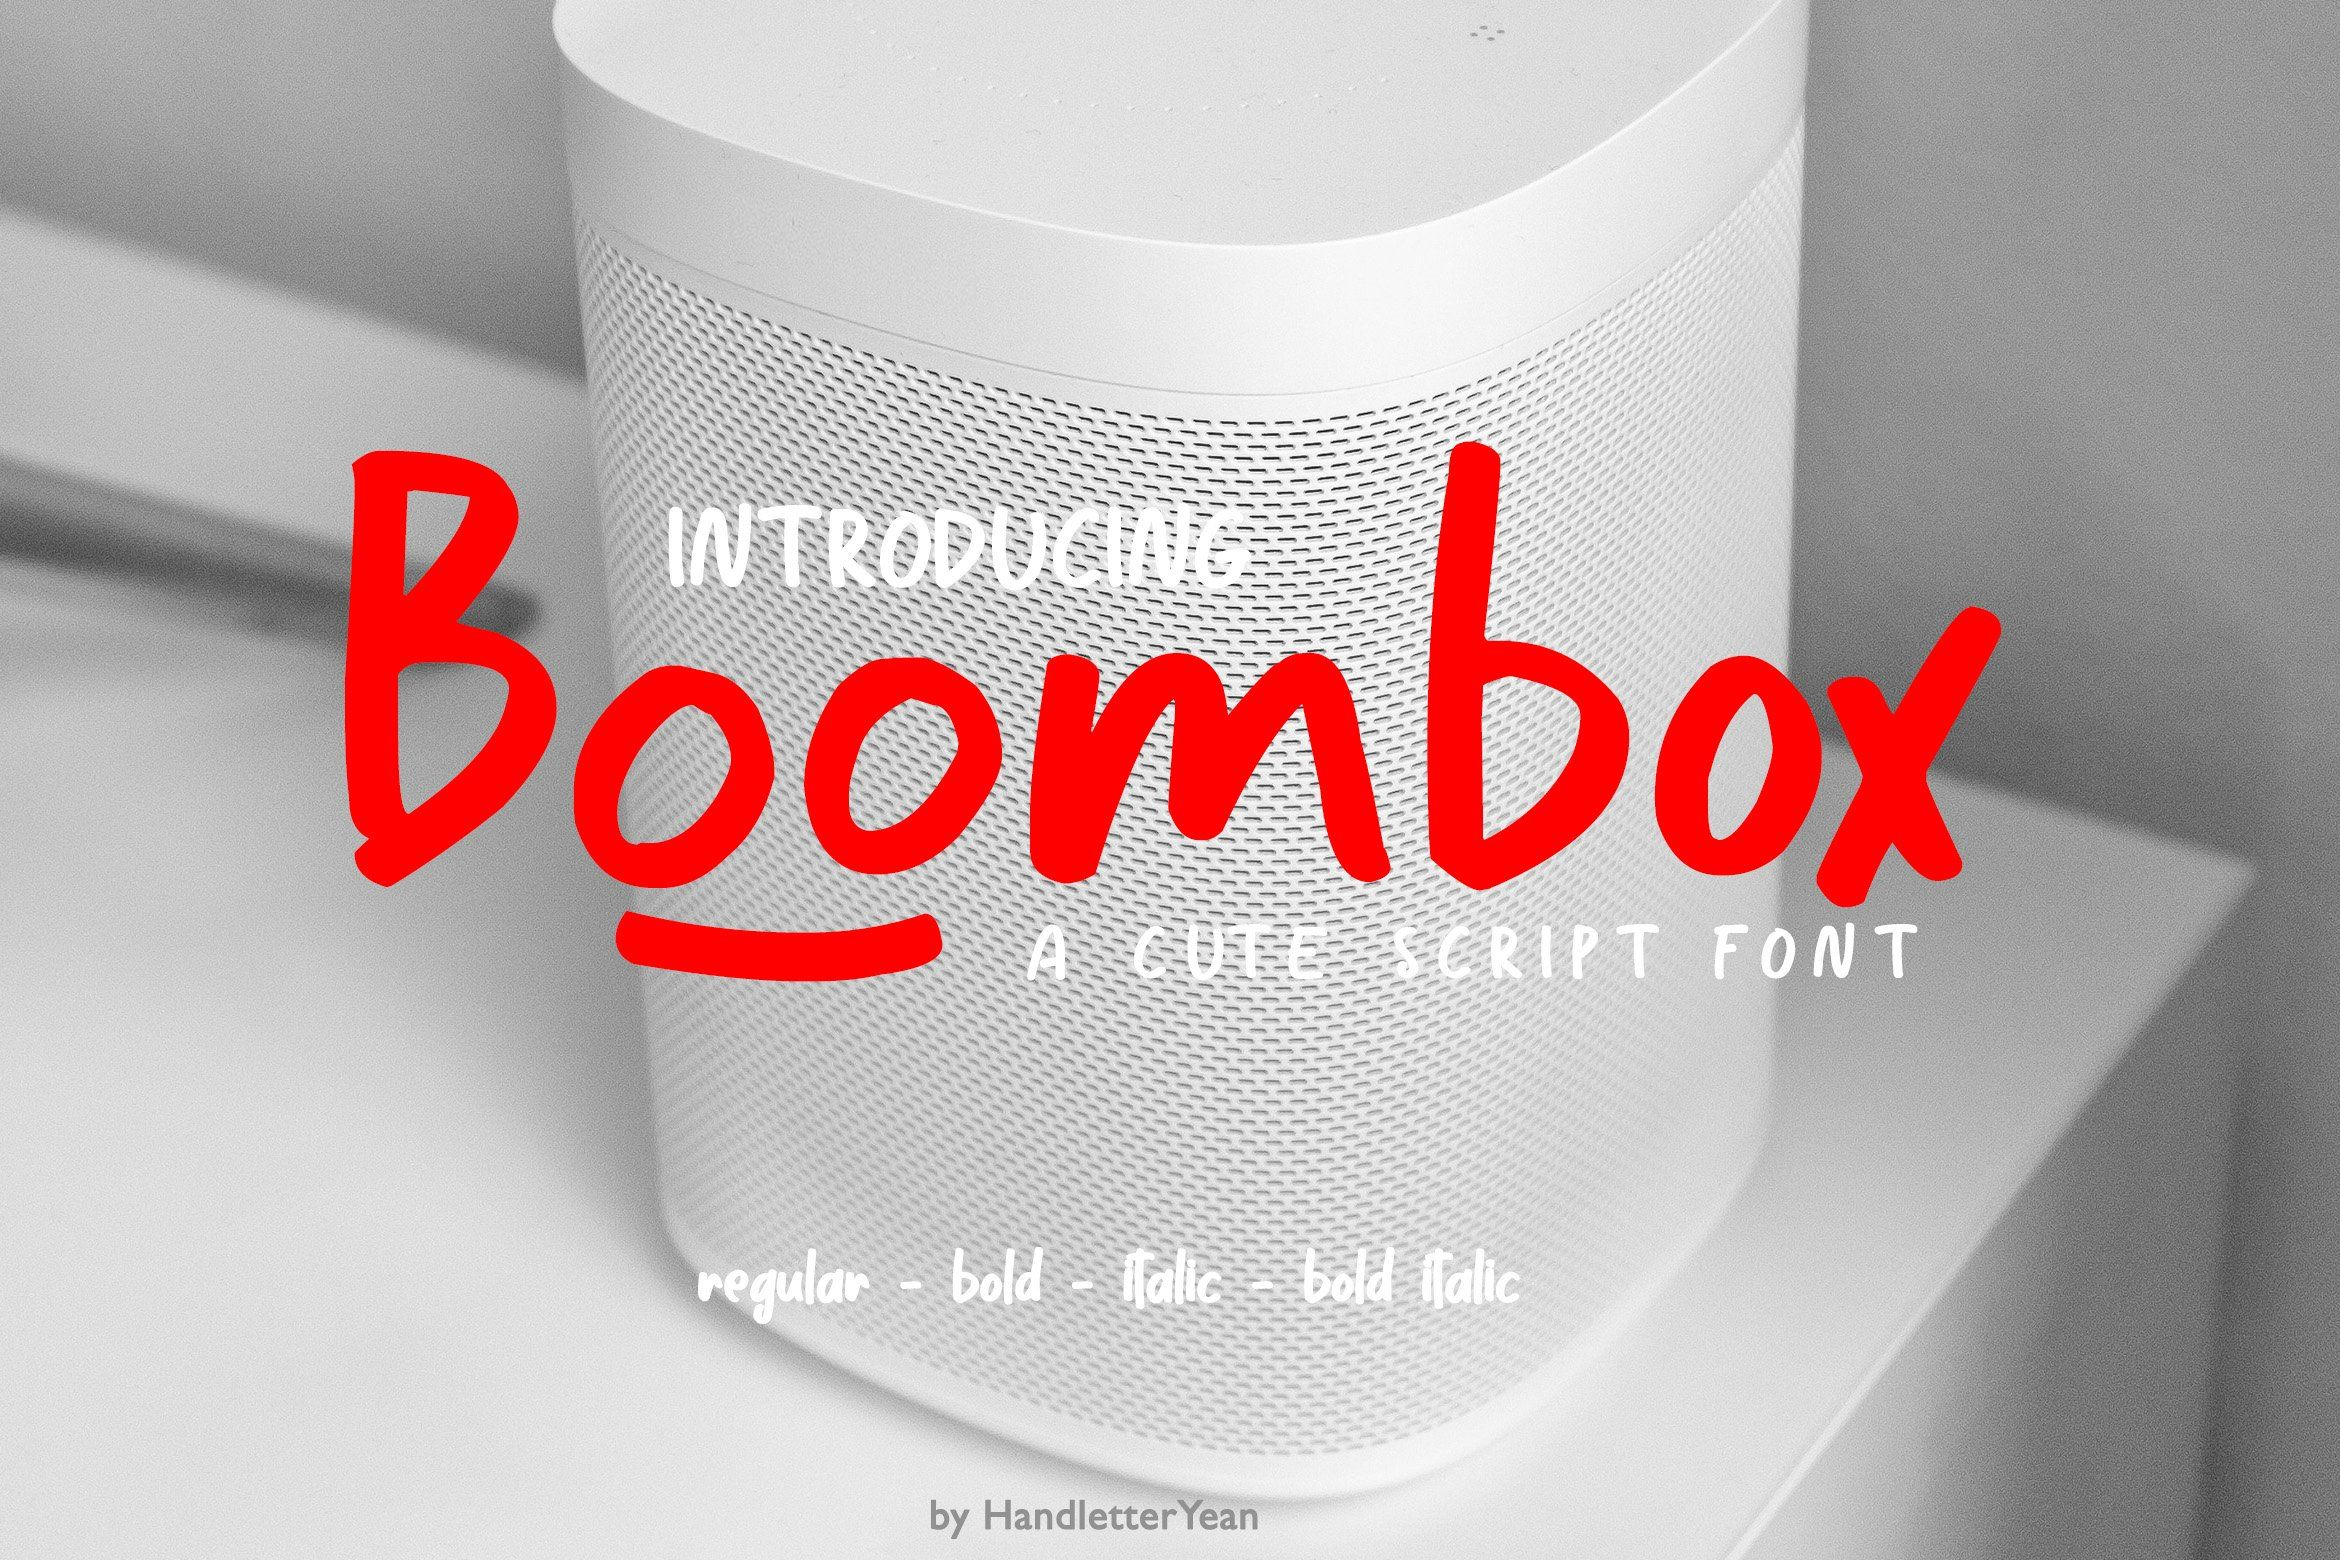 Boombox in 2021 commercial use fonts new fonts boombox